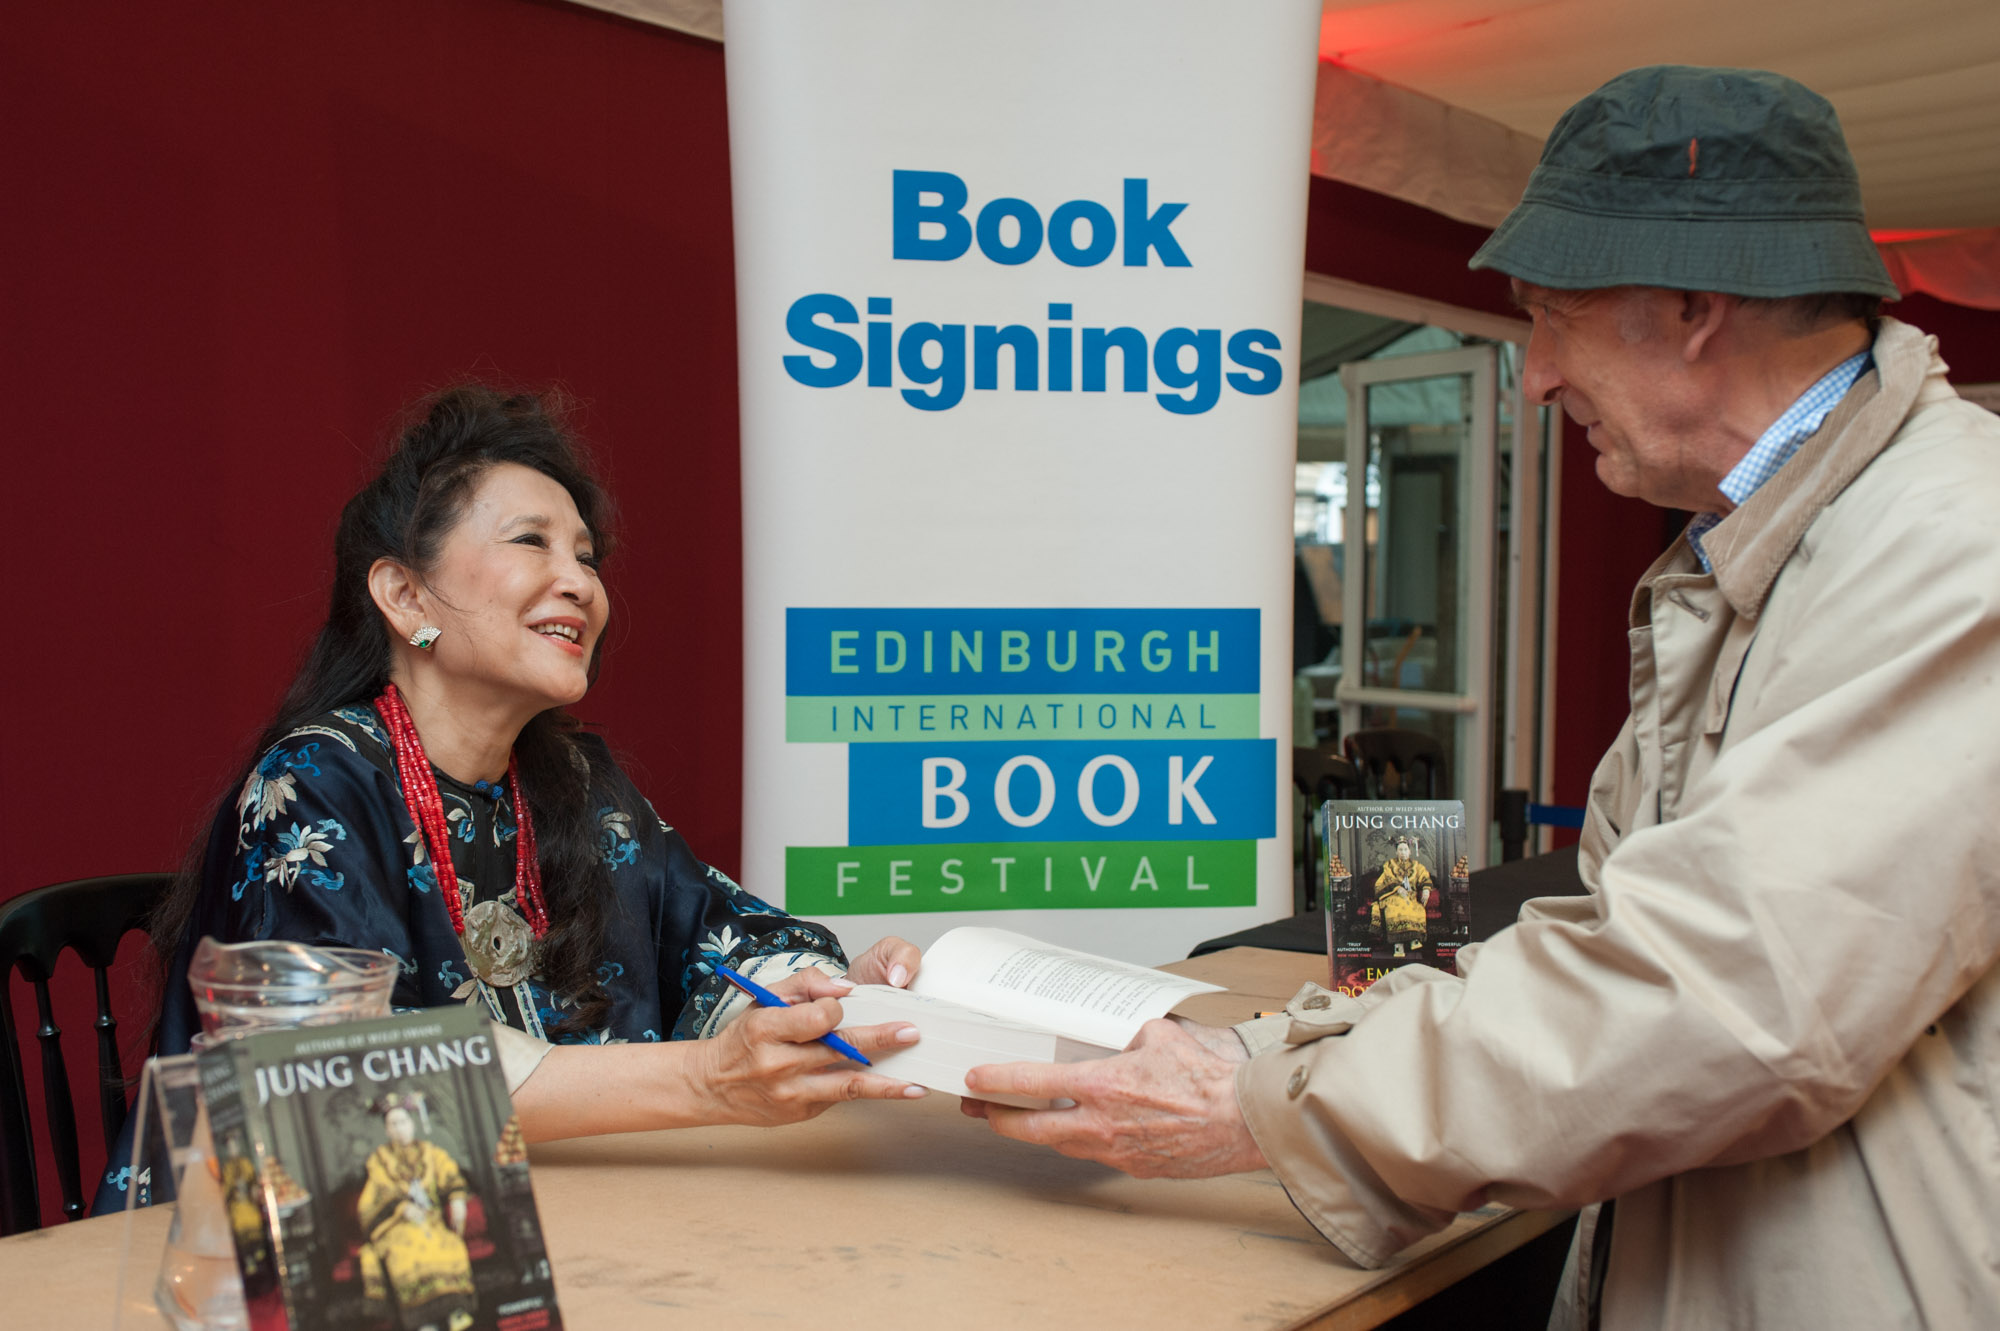 Jung Chang book signing at Edinburgh International Book Festival